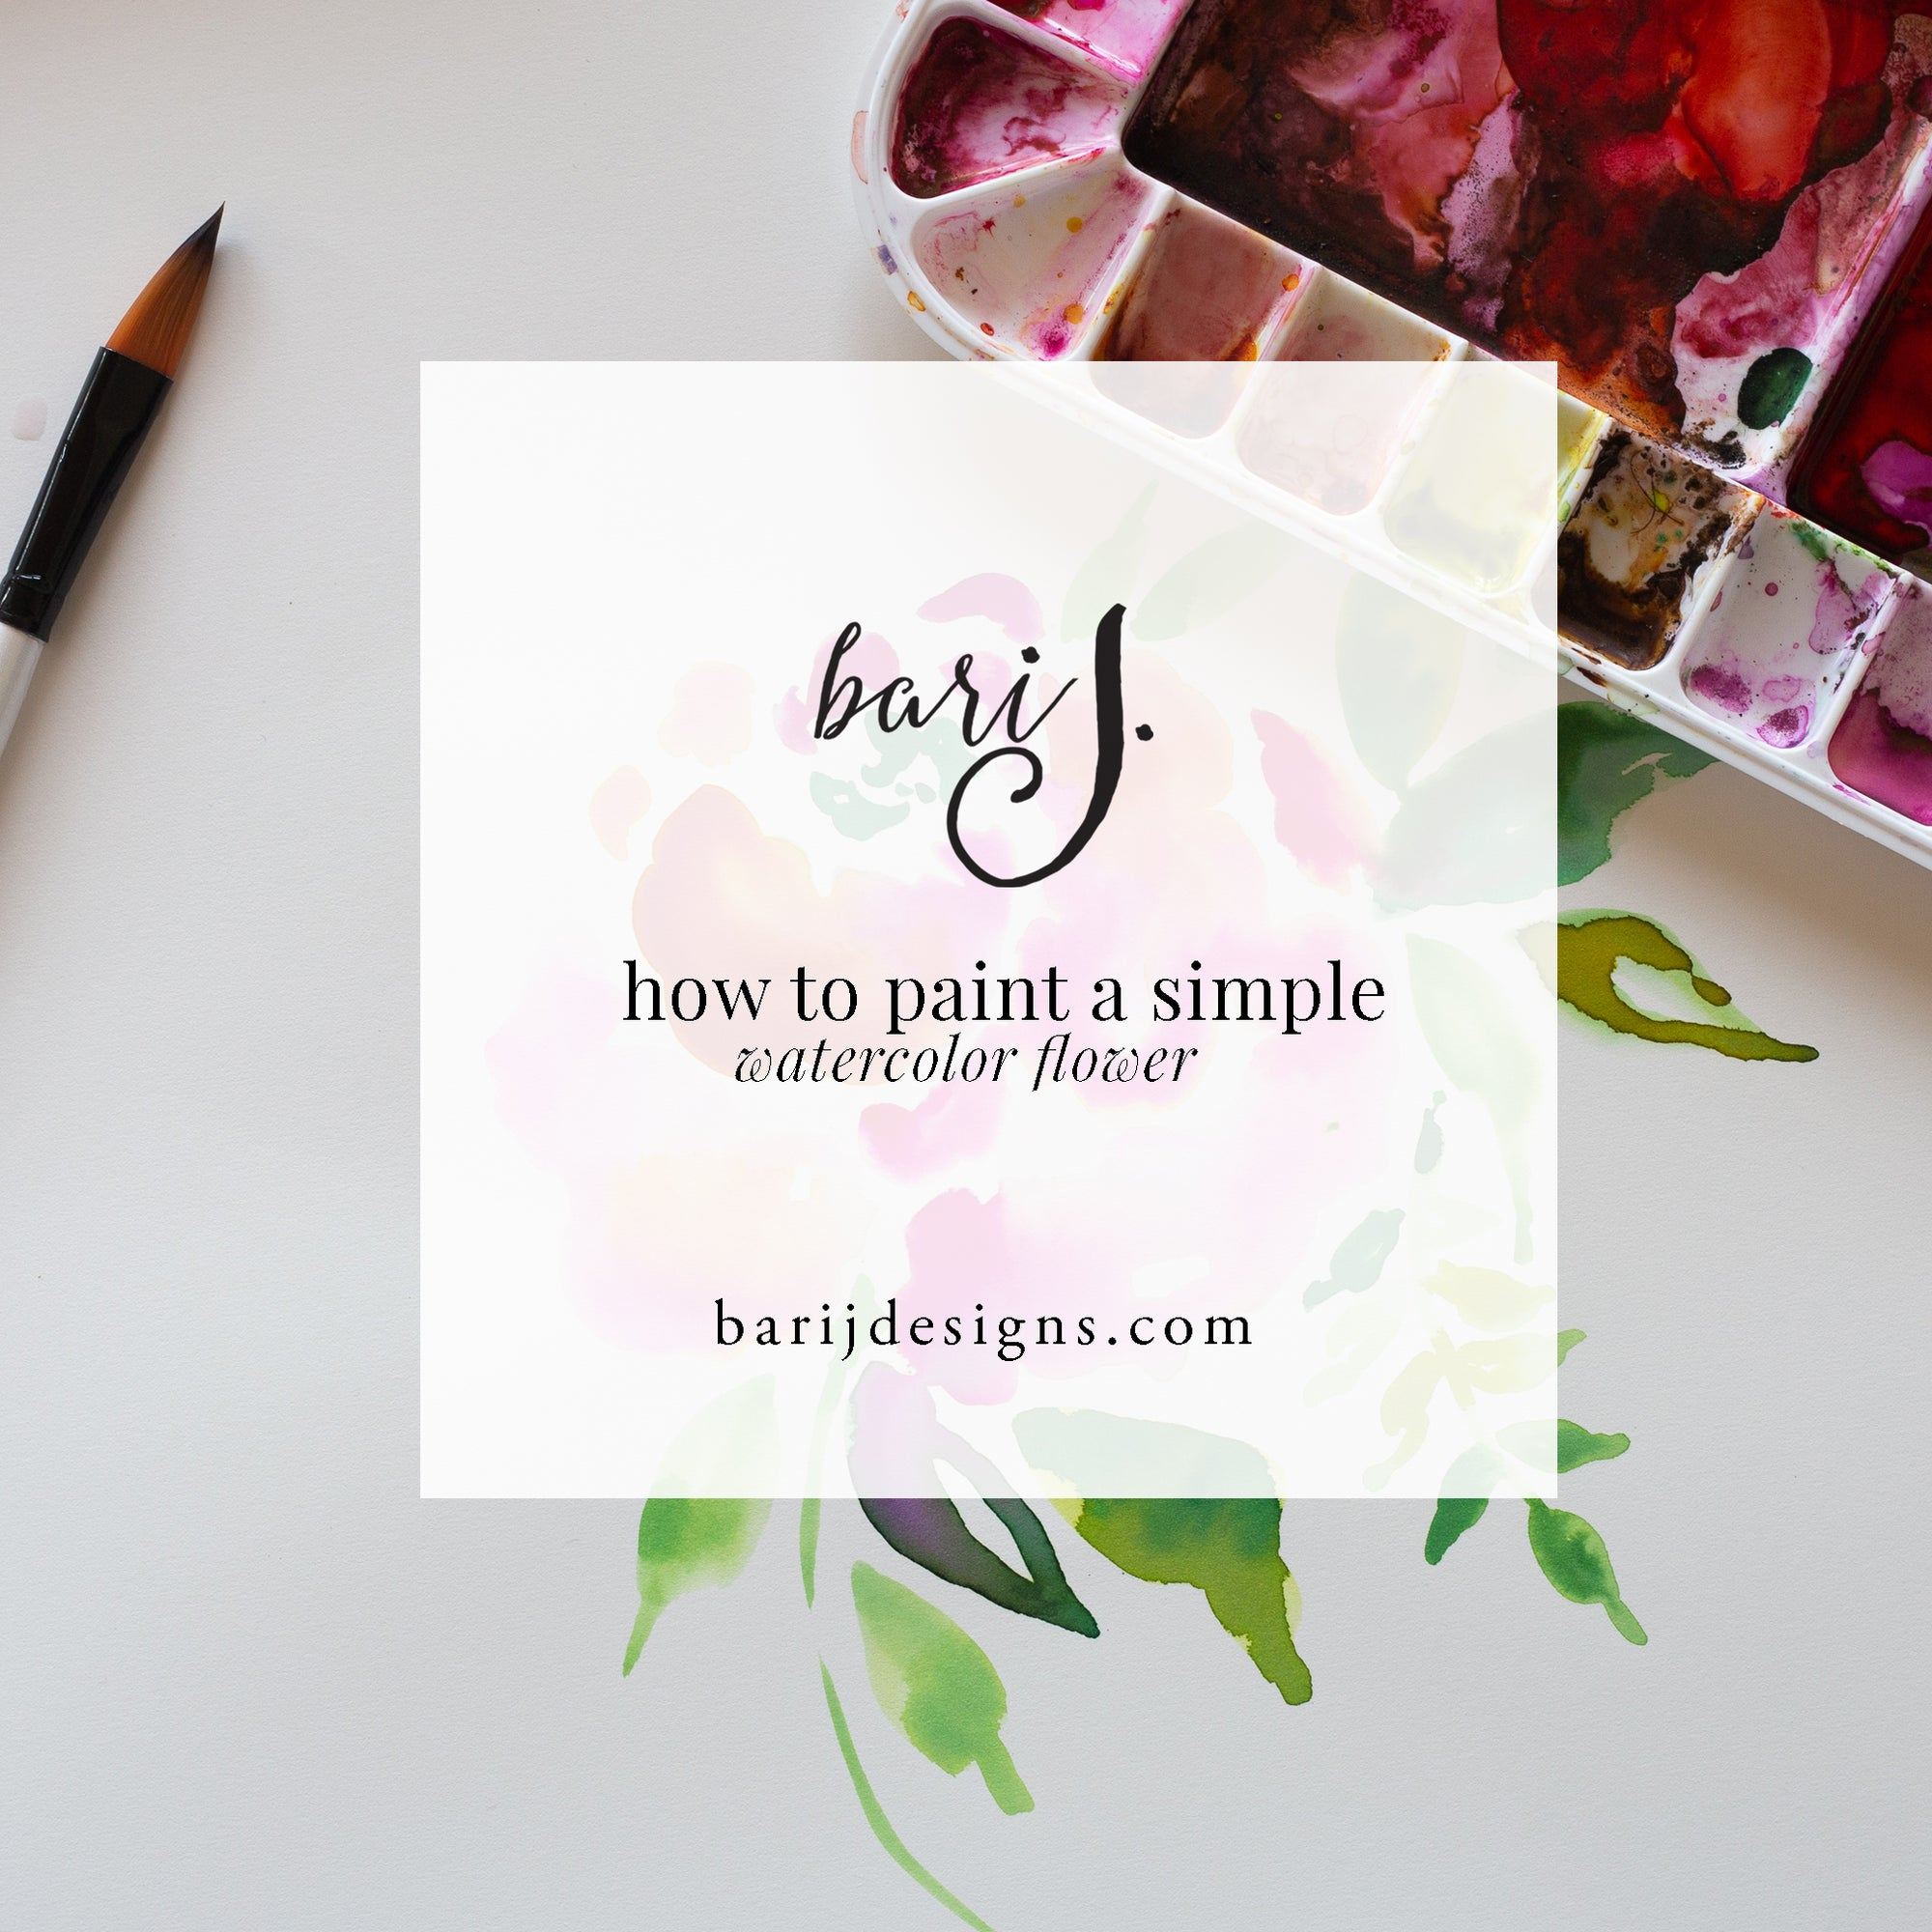 How to paint a simple watercolor flower